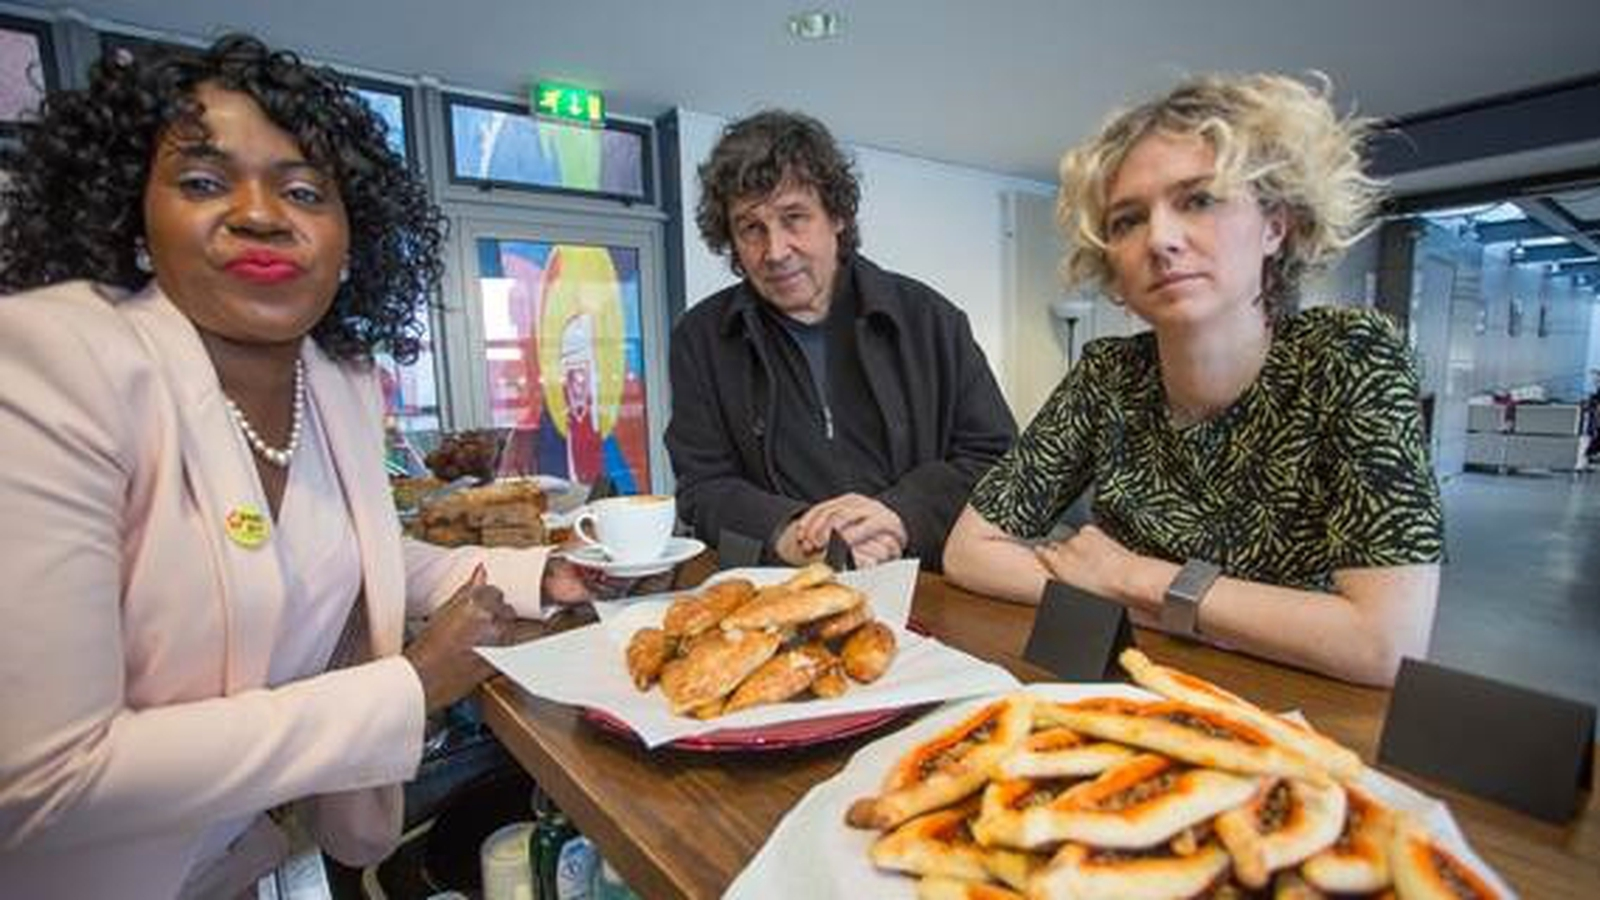 Image - Our Table co-founders Ellie Kisyombe and Michelle Darmody with actor Stephen Rea